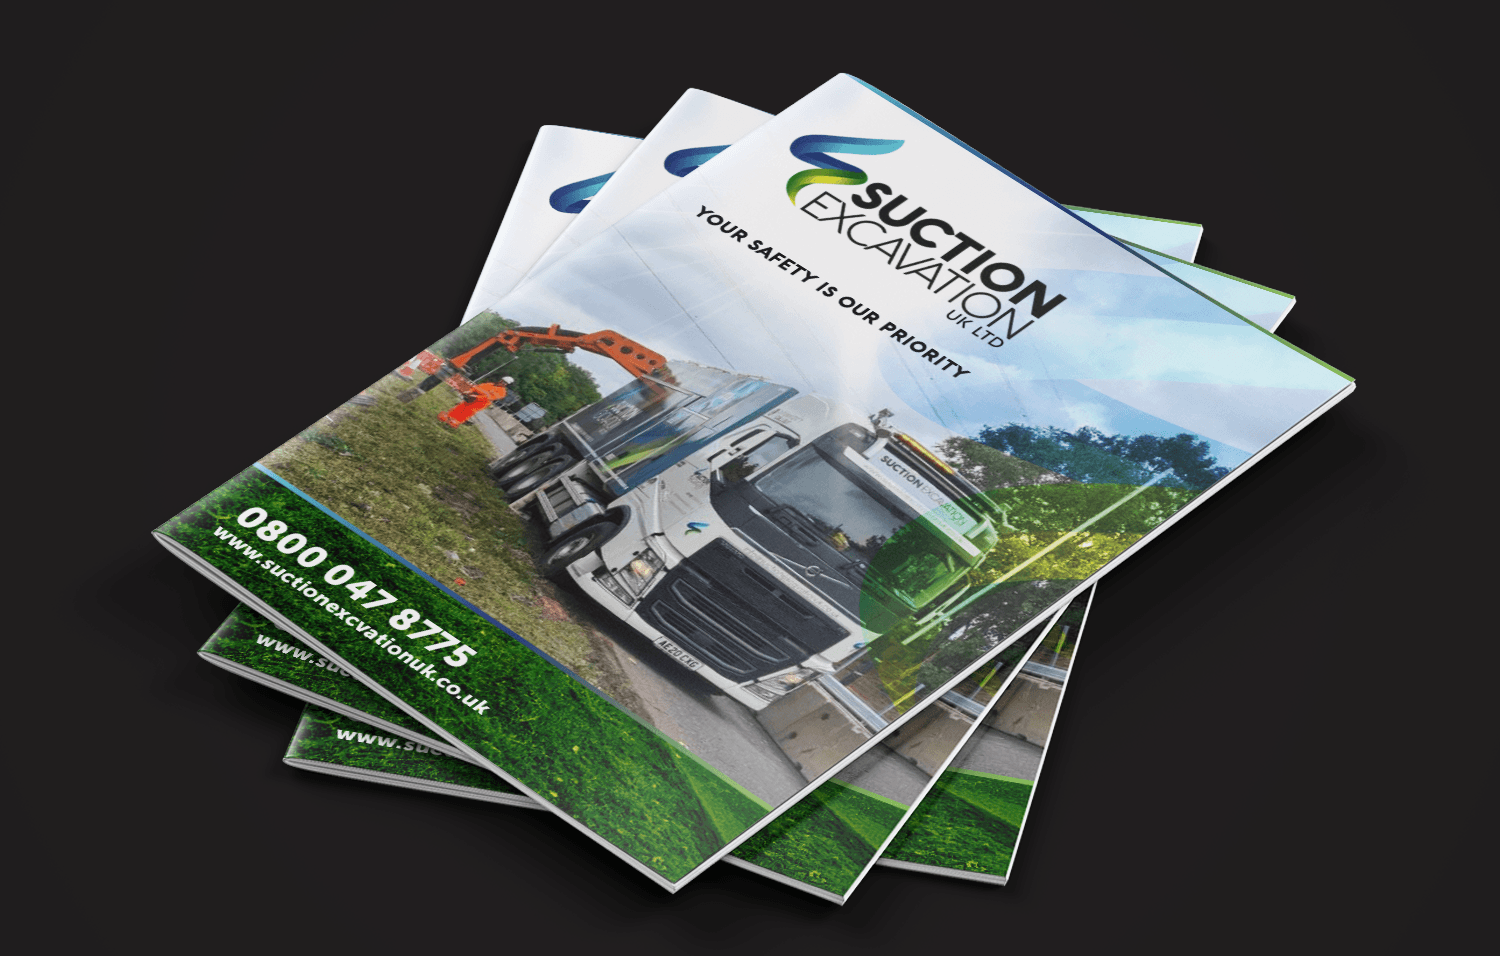 Suction Excavation brochure